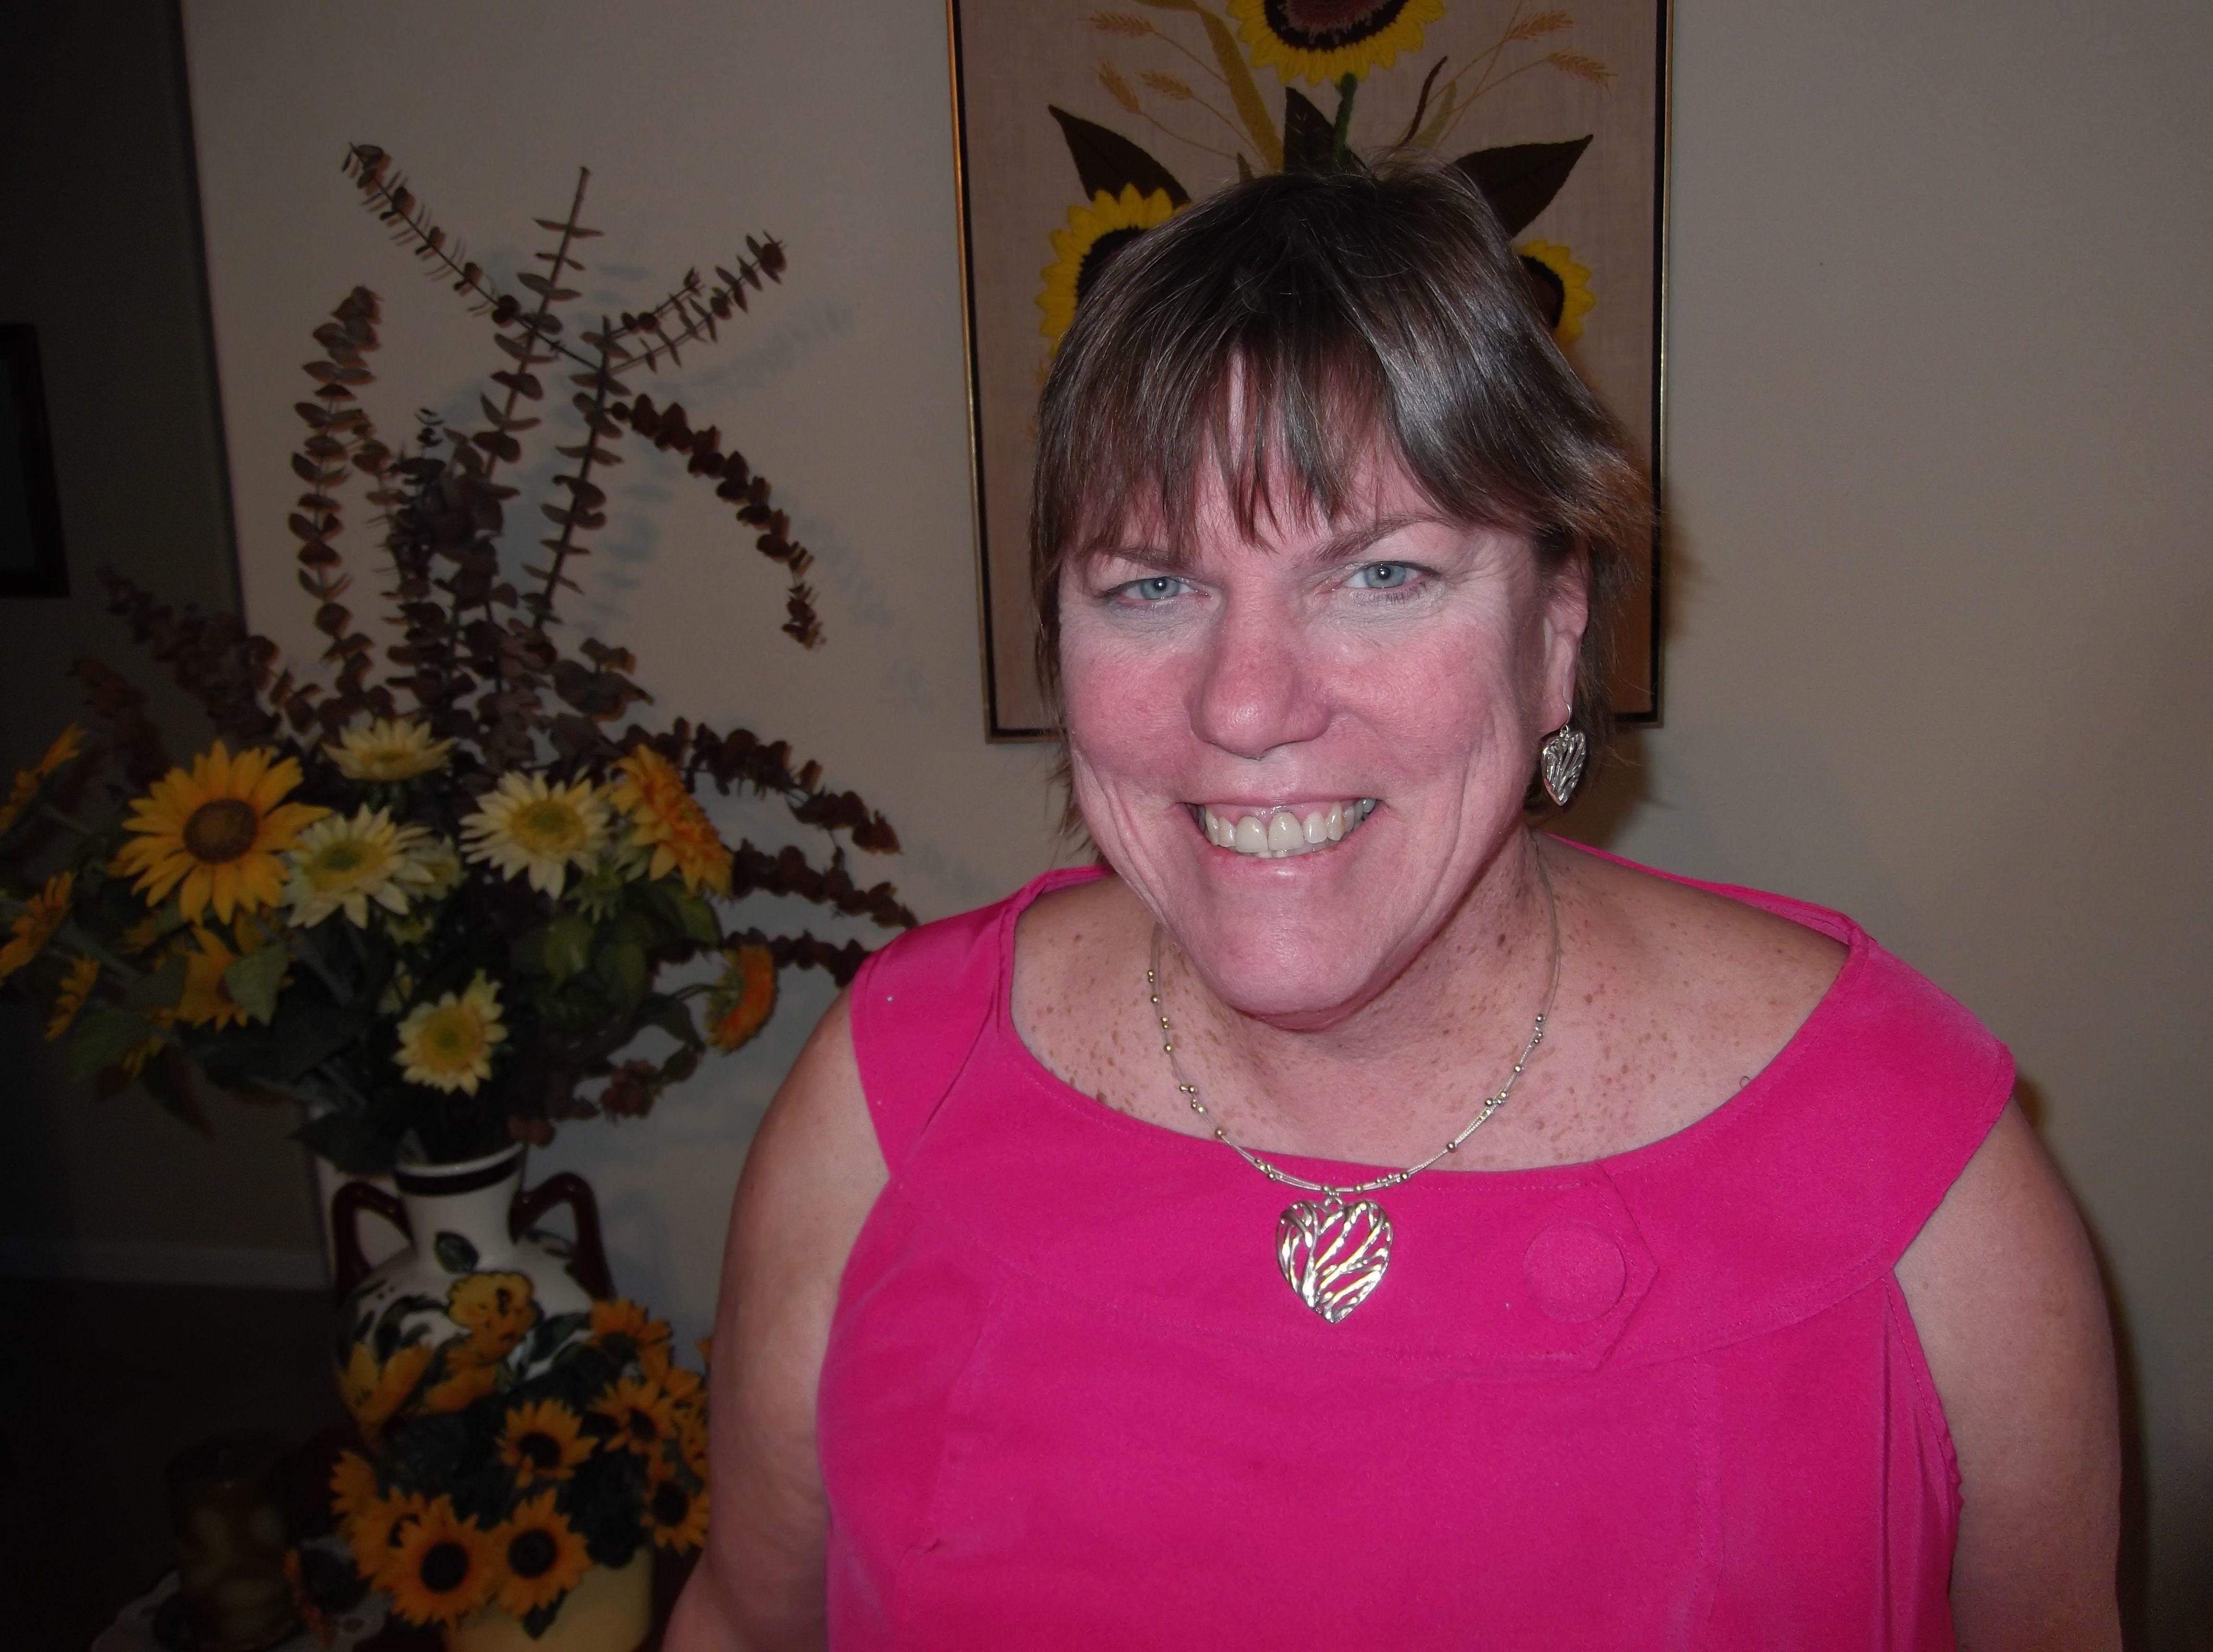 christian singles in annandale Meet christian single men in annandale on hudson interested in dating new people on zoosk date smarter and meet more singles interested in dating.